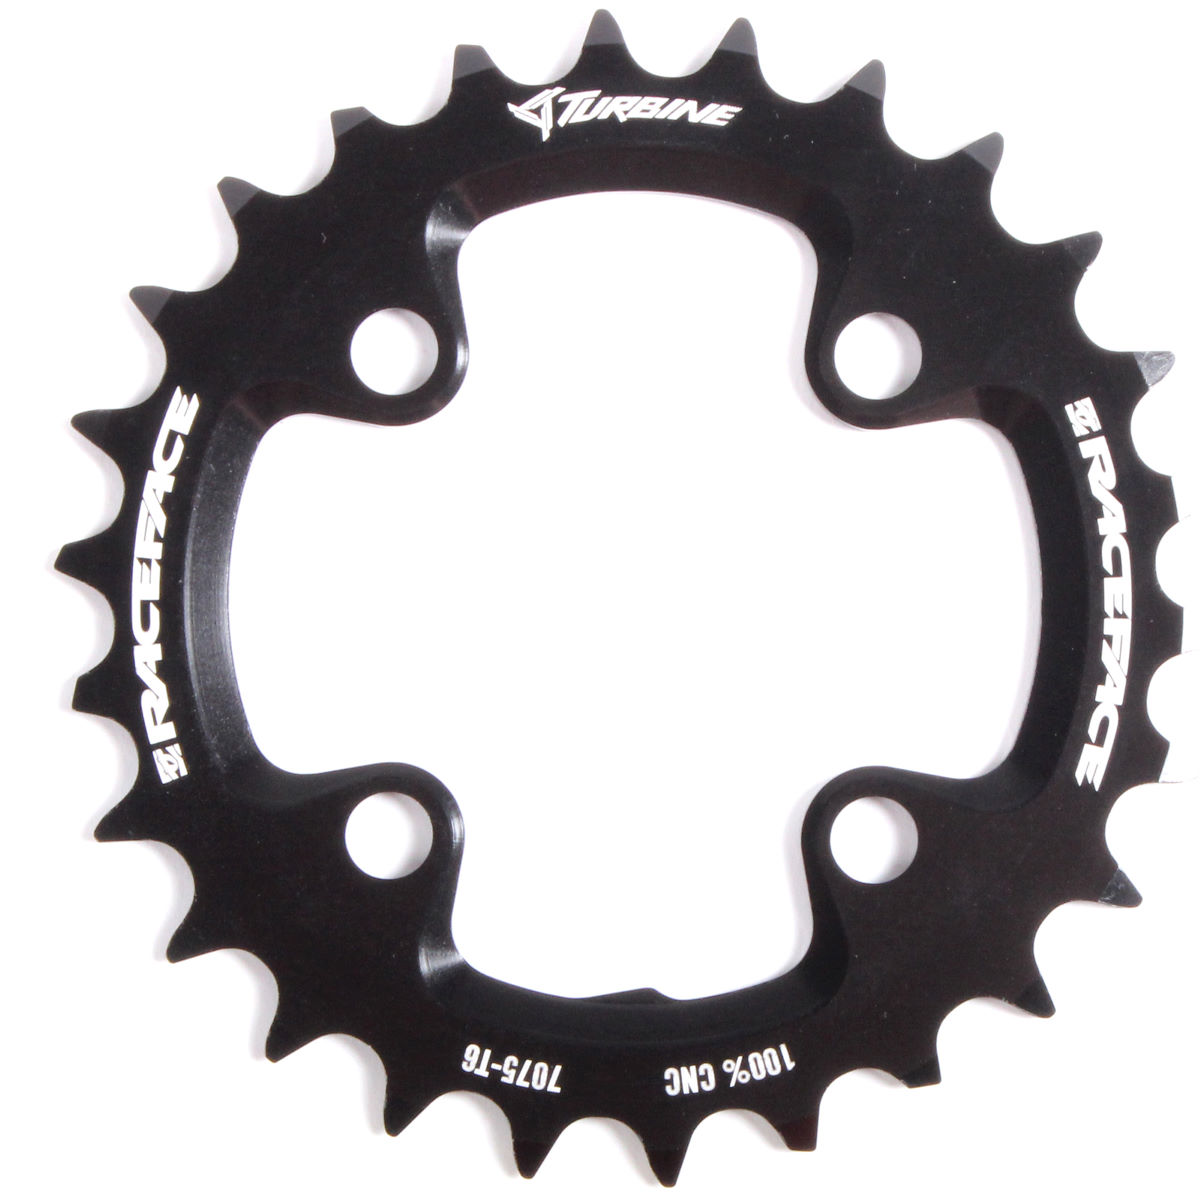 Plateau Race Face Turbine (11 vitesses, 26 dents) - 26 Tooth, 4-Arm